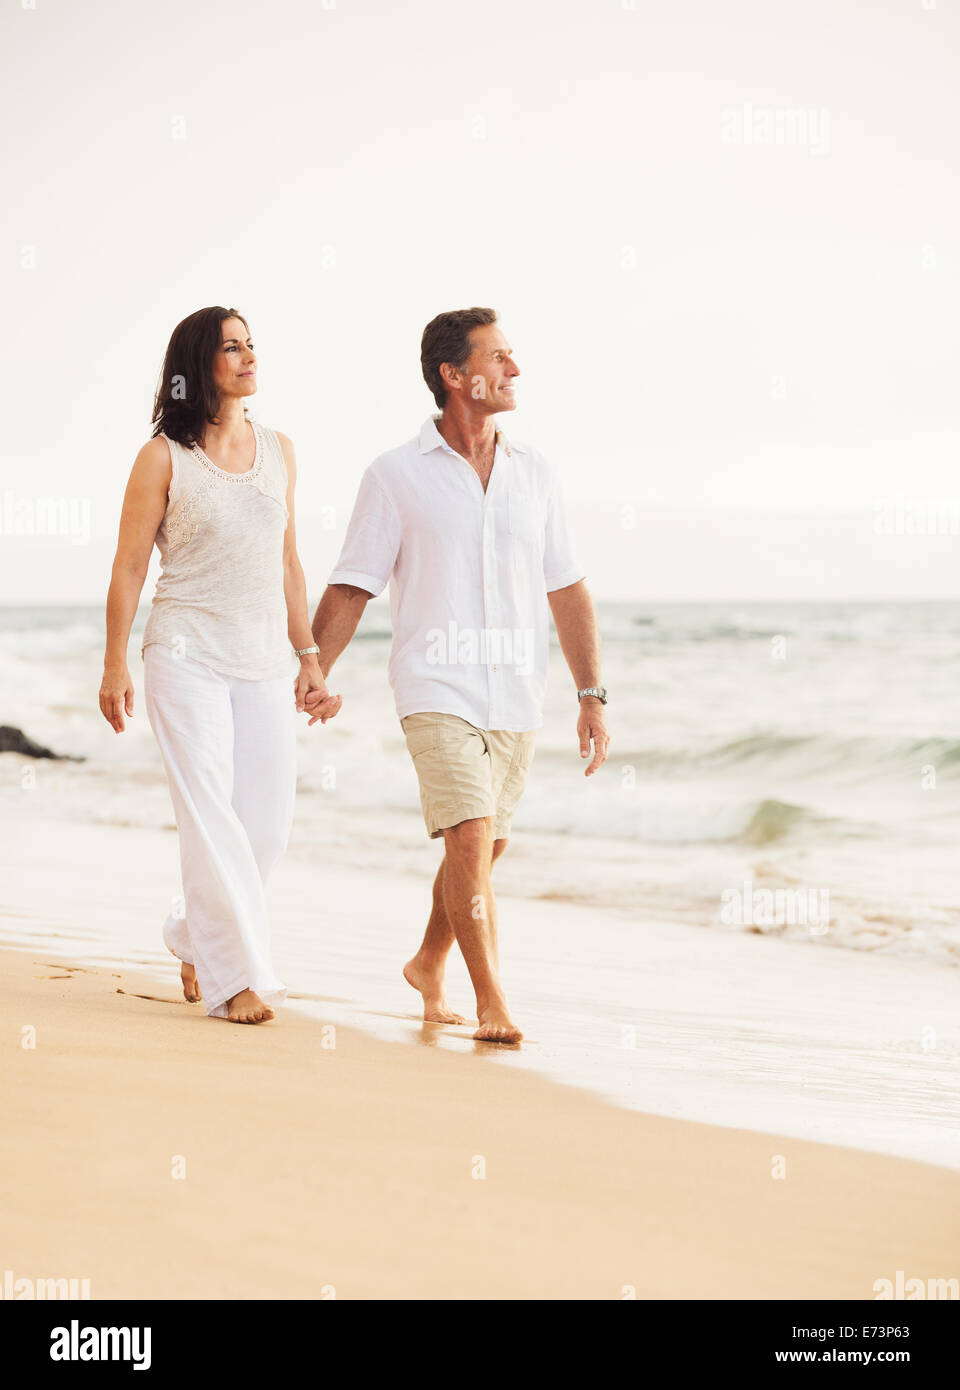 Mature Retired Couple Enjoying Sunset Walk on the Beach - Stock Image